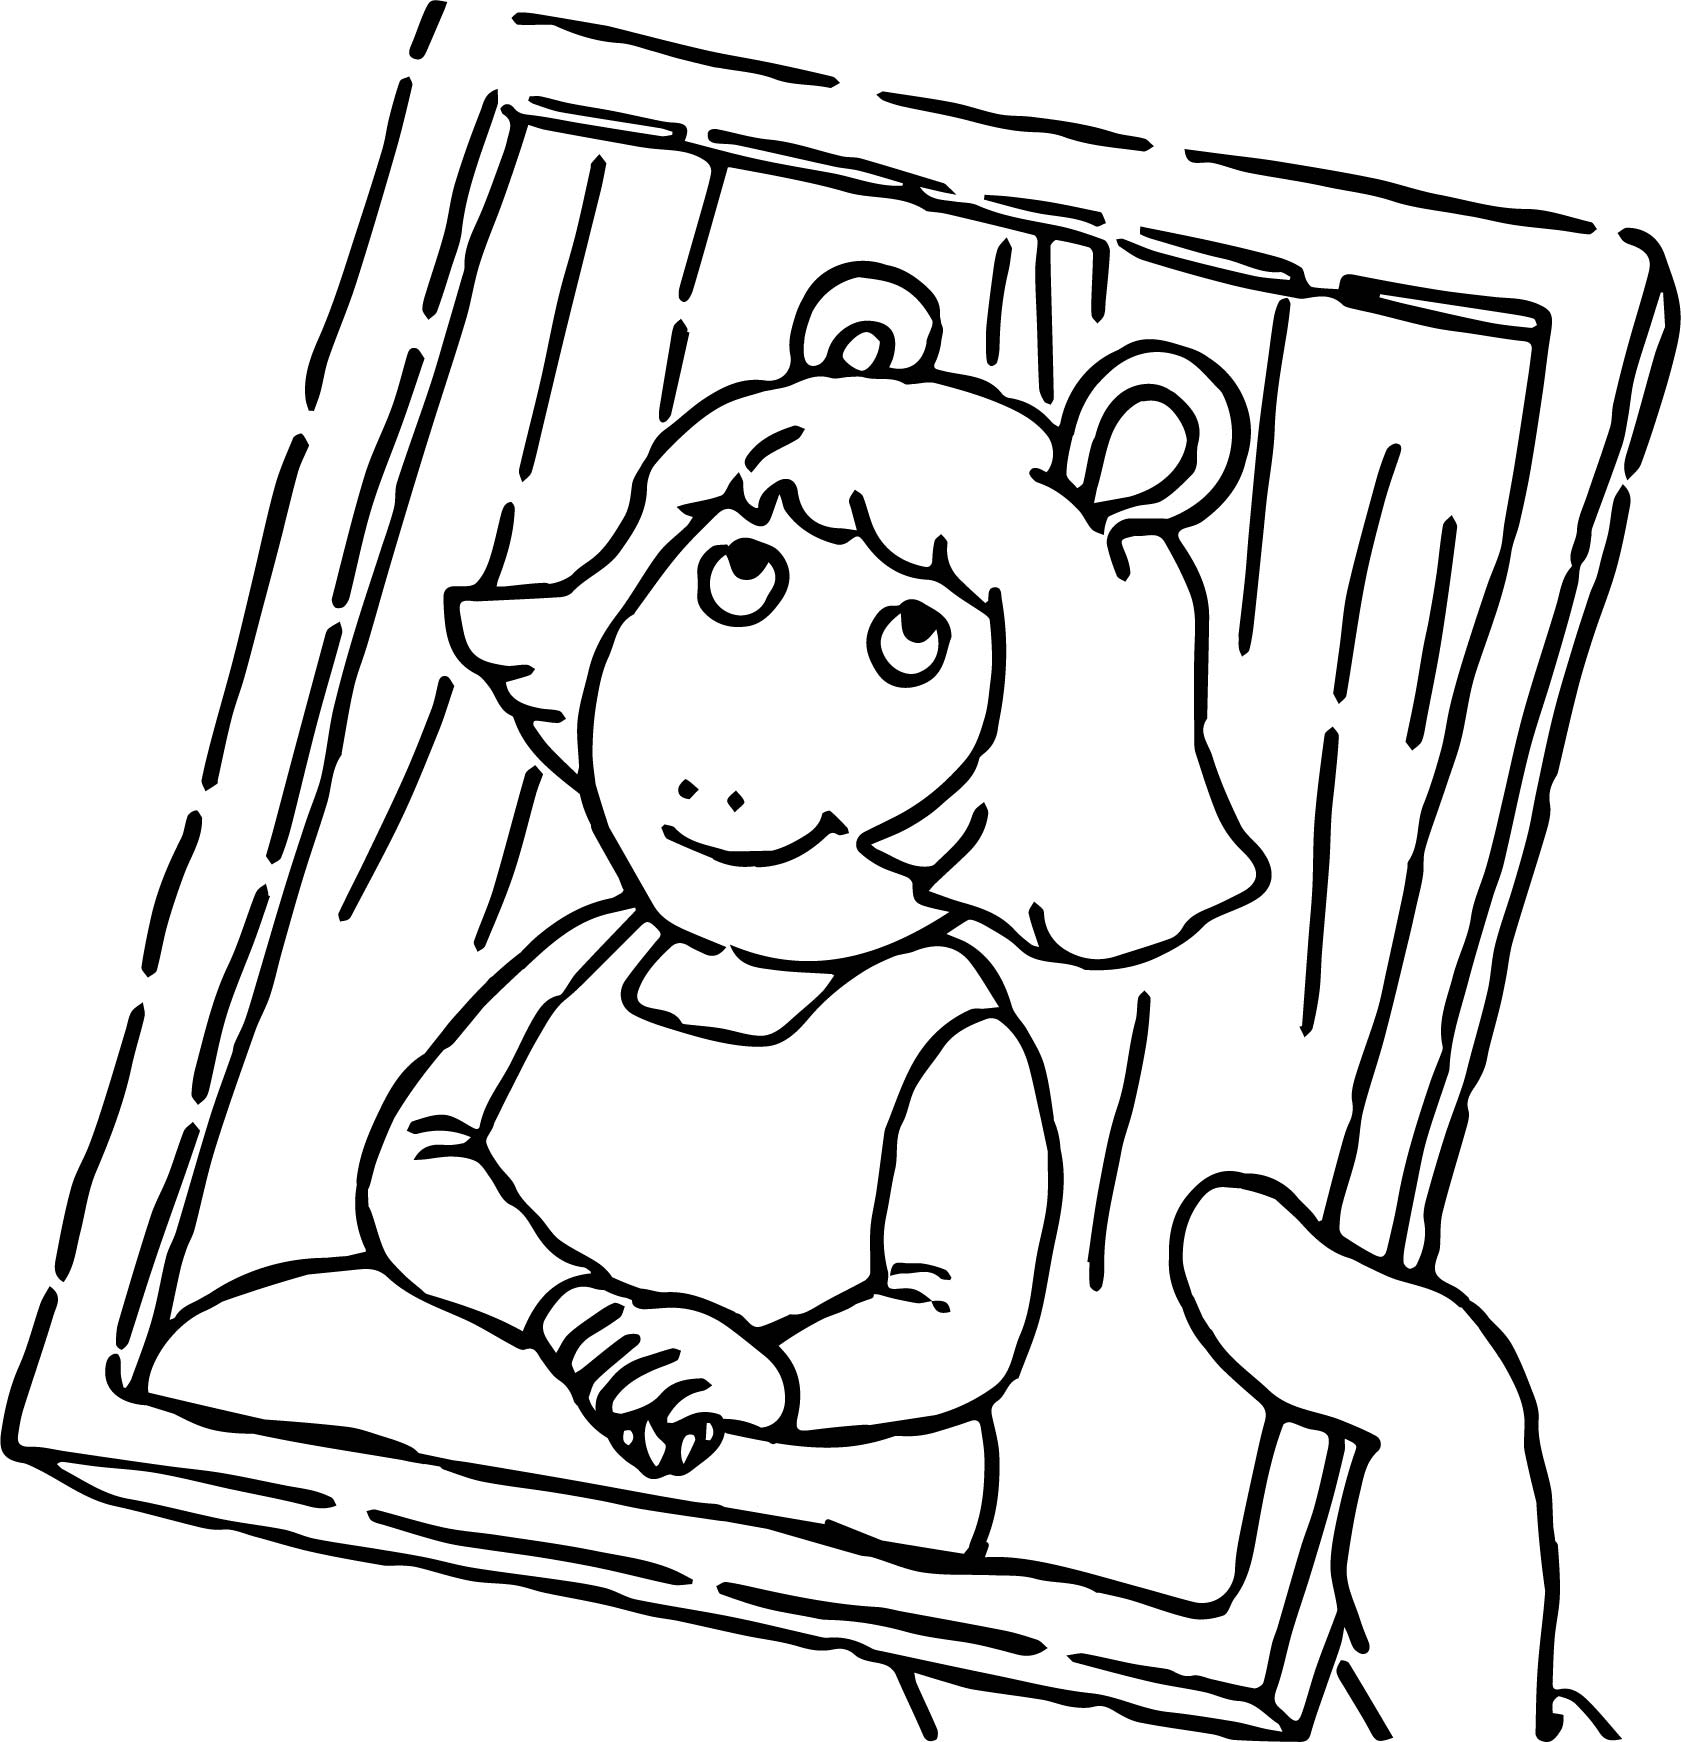 Arthur Girl Photo Coloring Page | Wecoloringpage.com